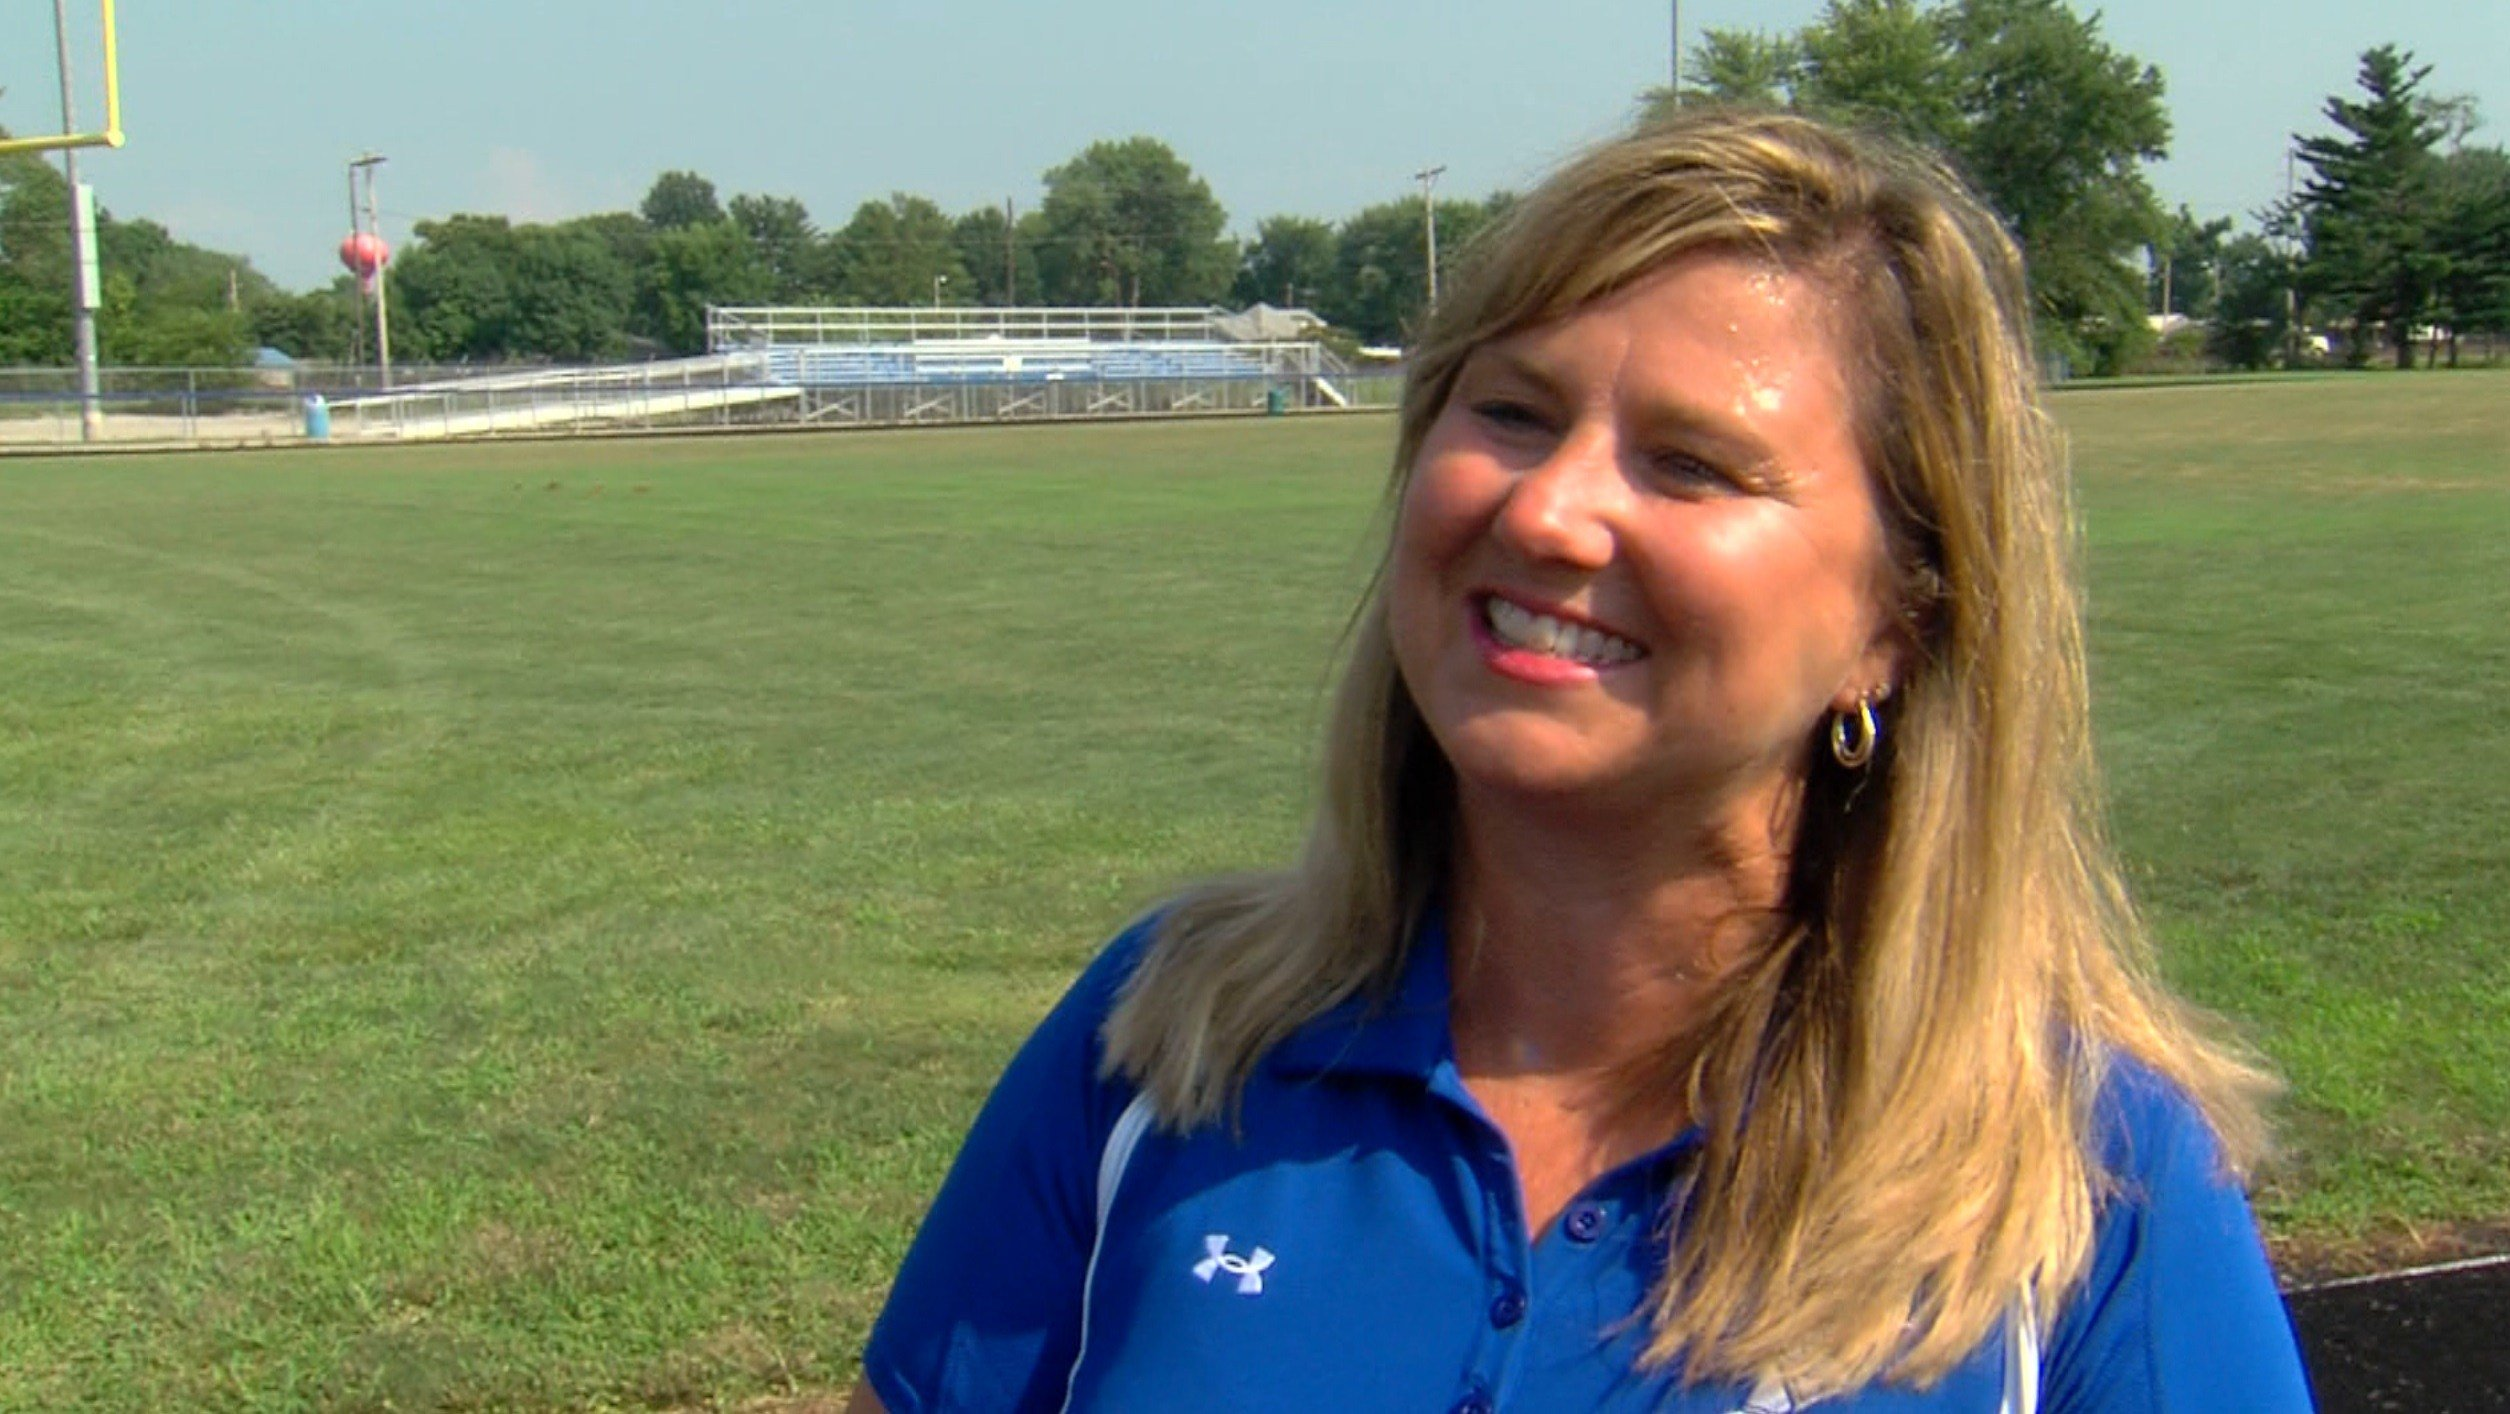 Shelly Wills, Carlinville girls track and field head coach